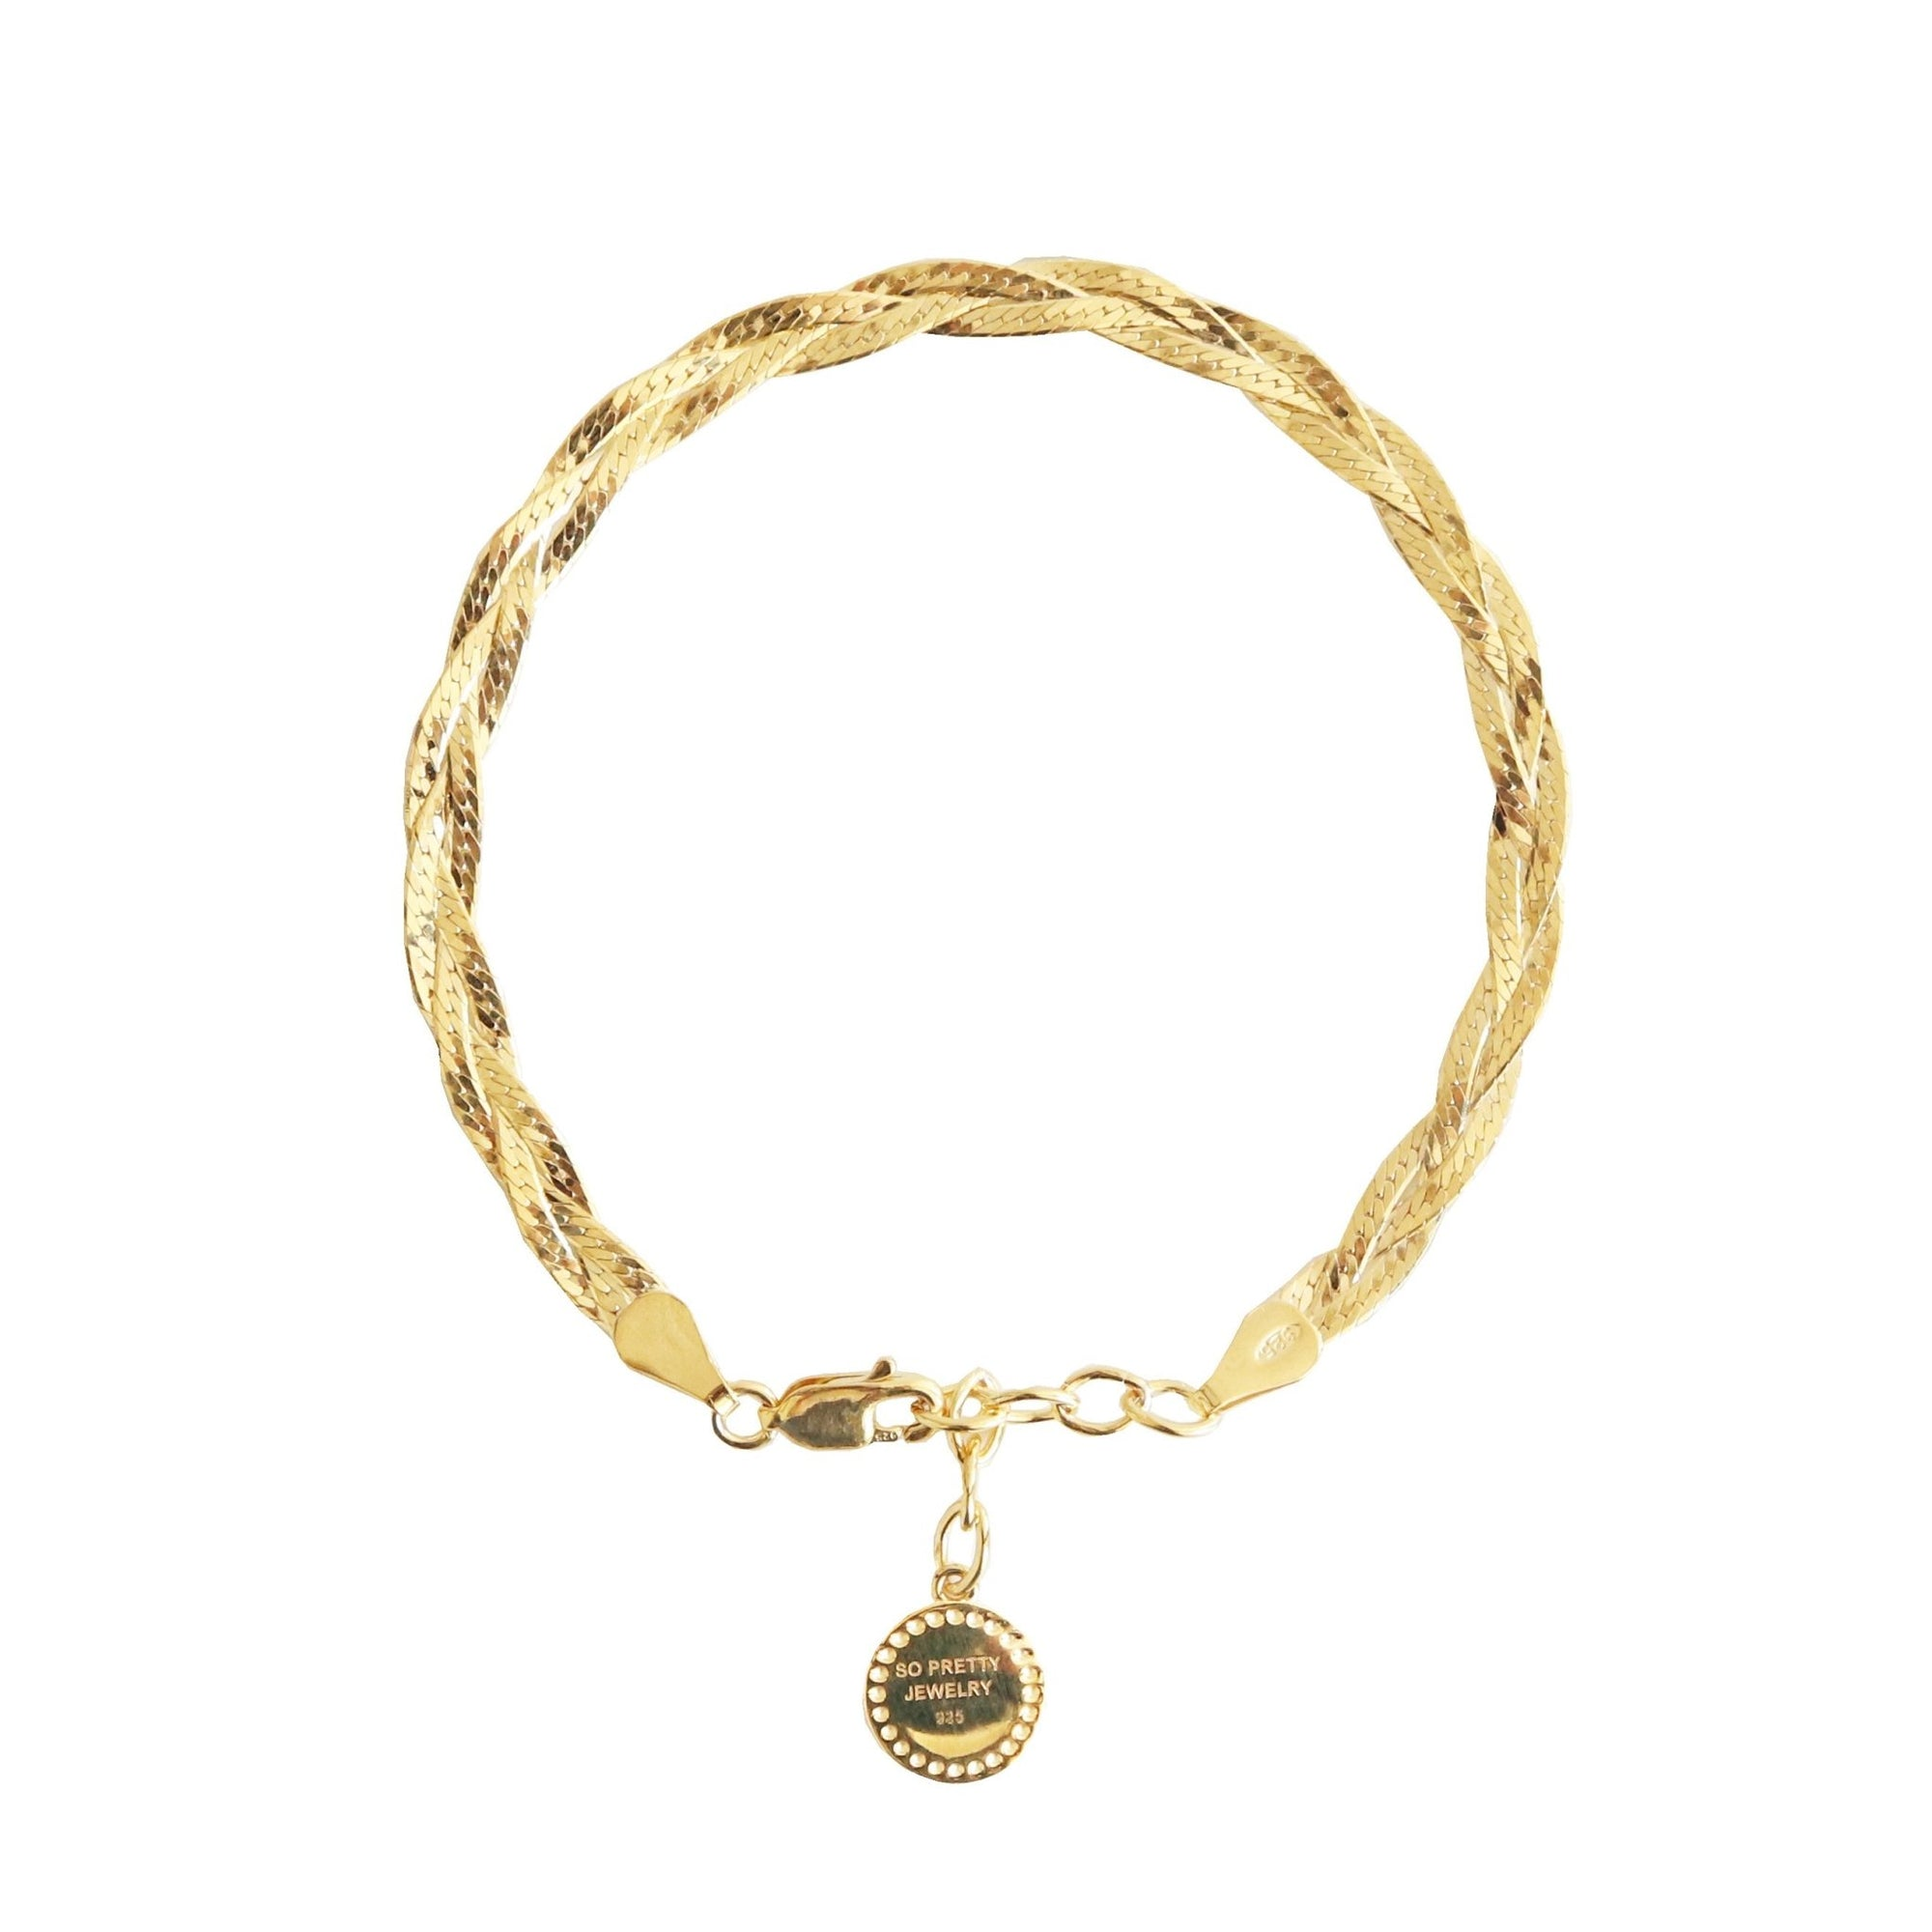 "FRAICHE INSPIRE BRAIDED HERRINGBONE BRACELET- GOLD 6-7"" - SO PRETTY CARA COTTER"